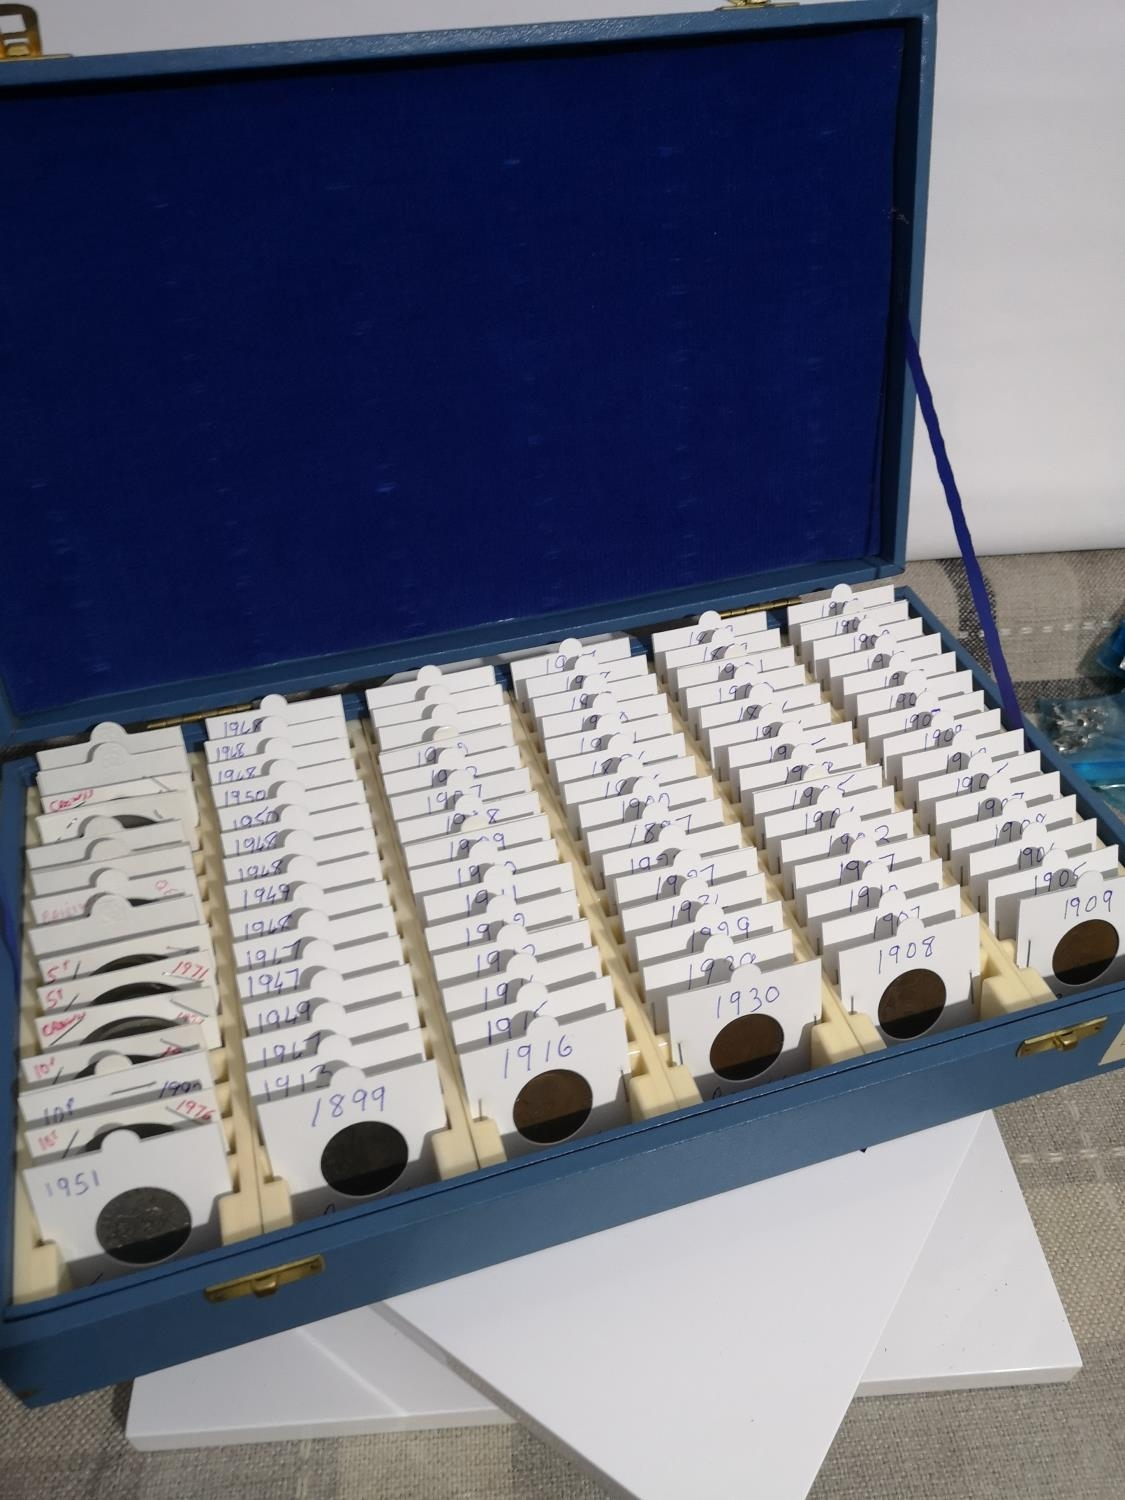 A CASE CONTAINING A COLLECTION OF PENNY'S, CROWNS, TWO SHILLINGS AND MANY OTHERS